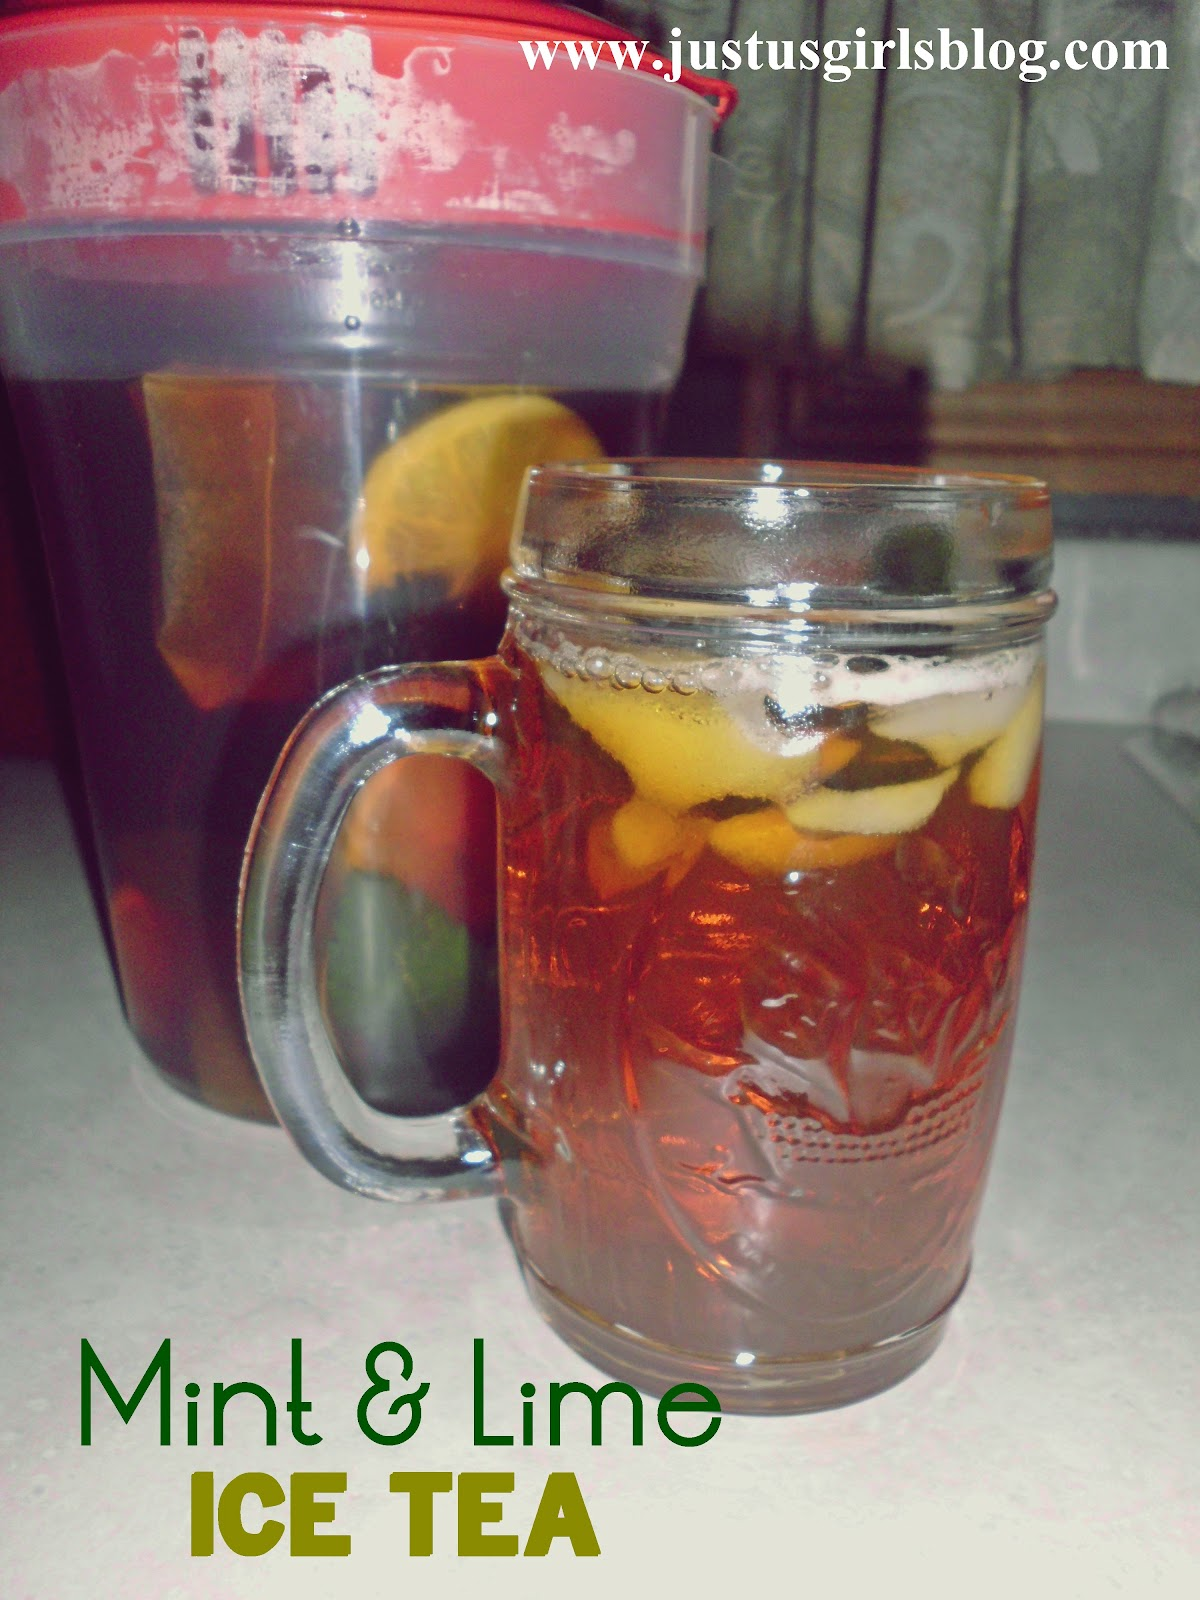 Just Us Girls: Thirsty Thursday: Mint & Lime Iced Tea